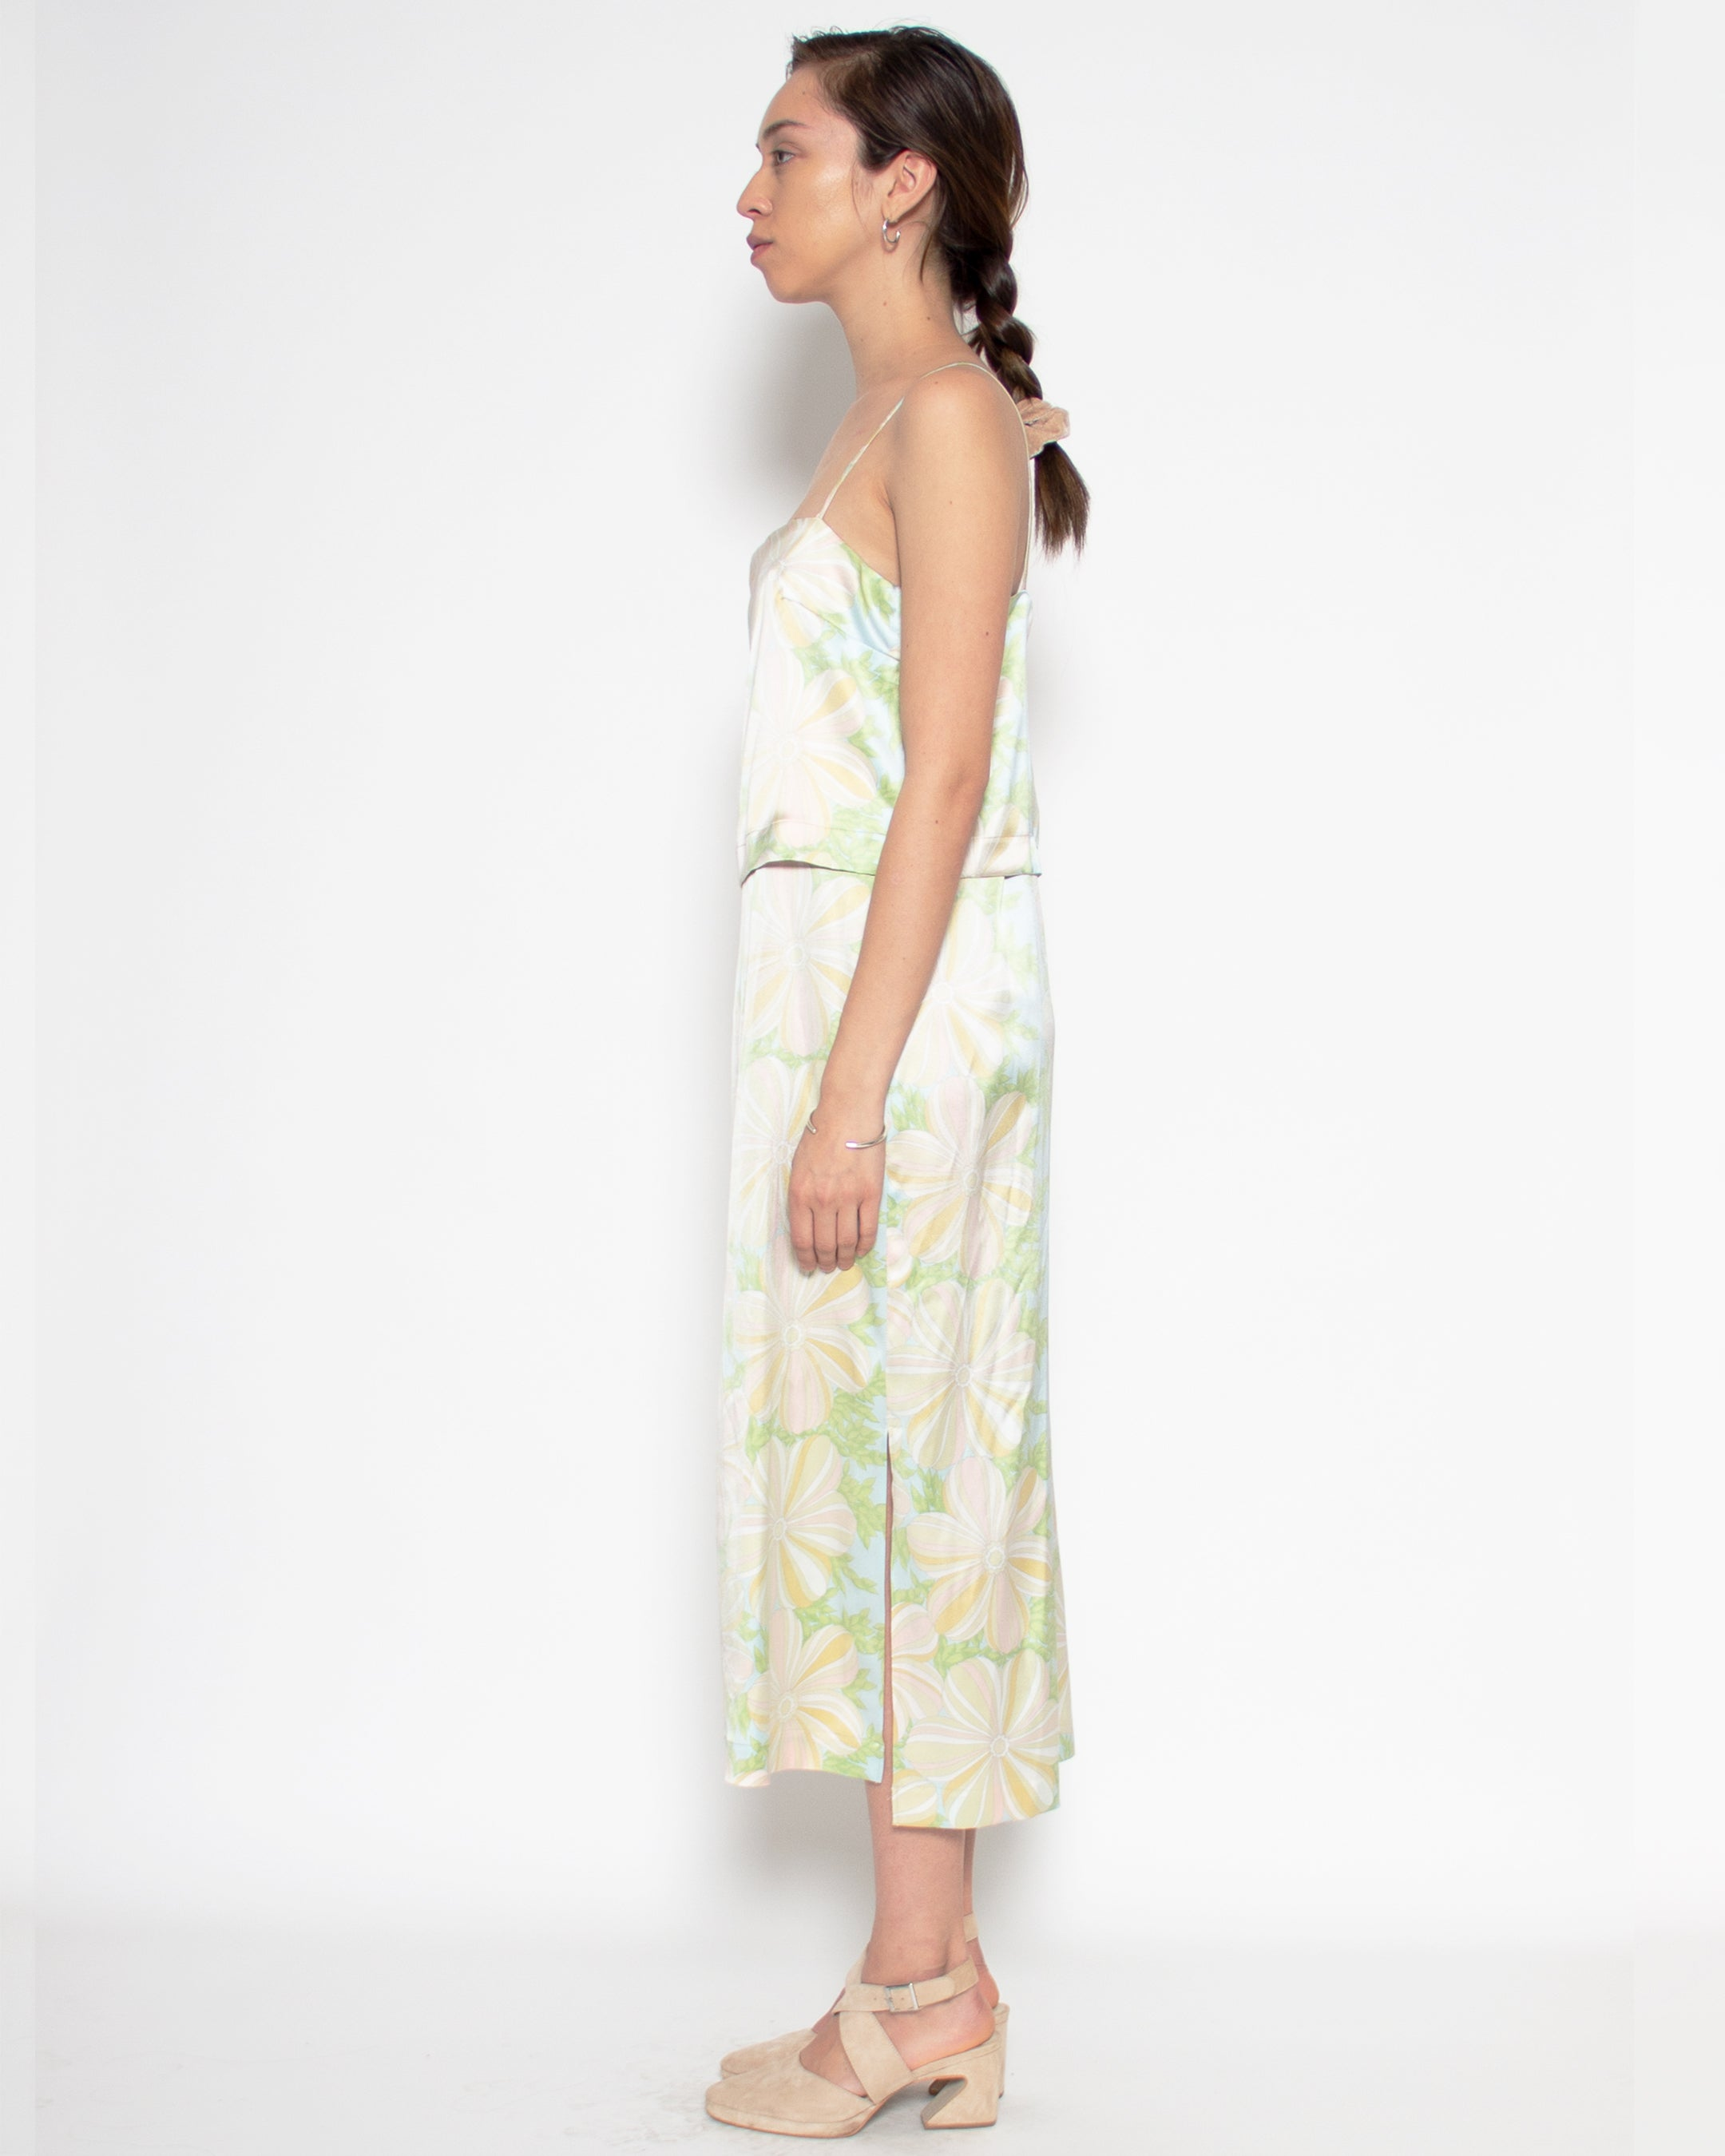 Camilla Dress in Reclaimed Silk Floral Print